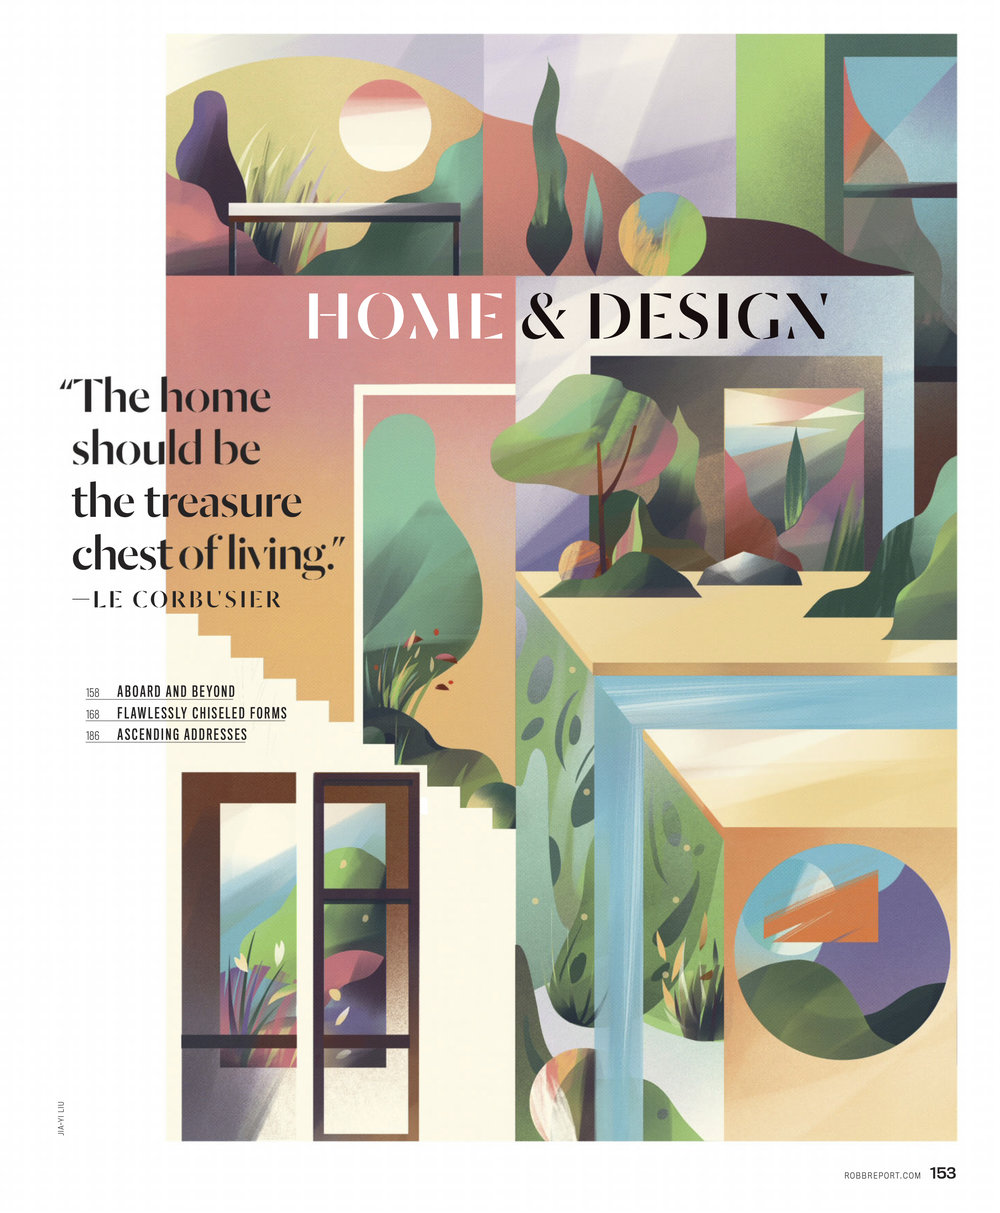 """Home & Design"" (Client: Robb Report)"